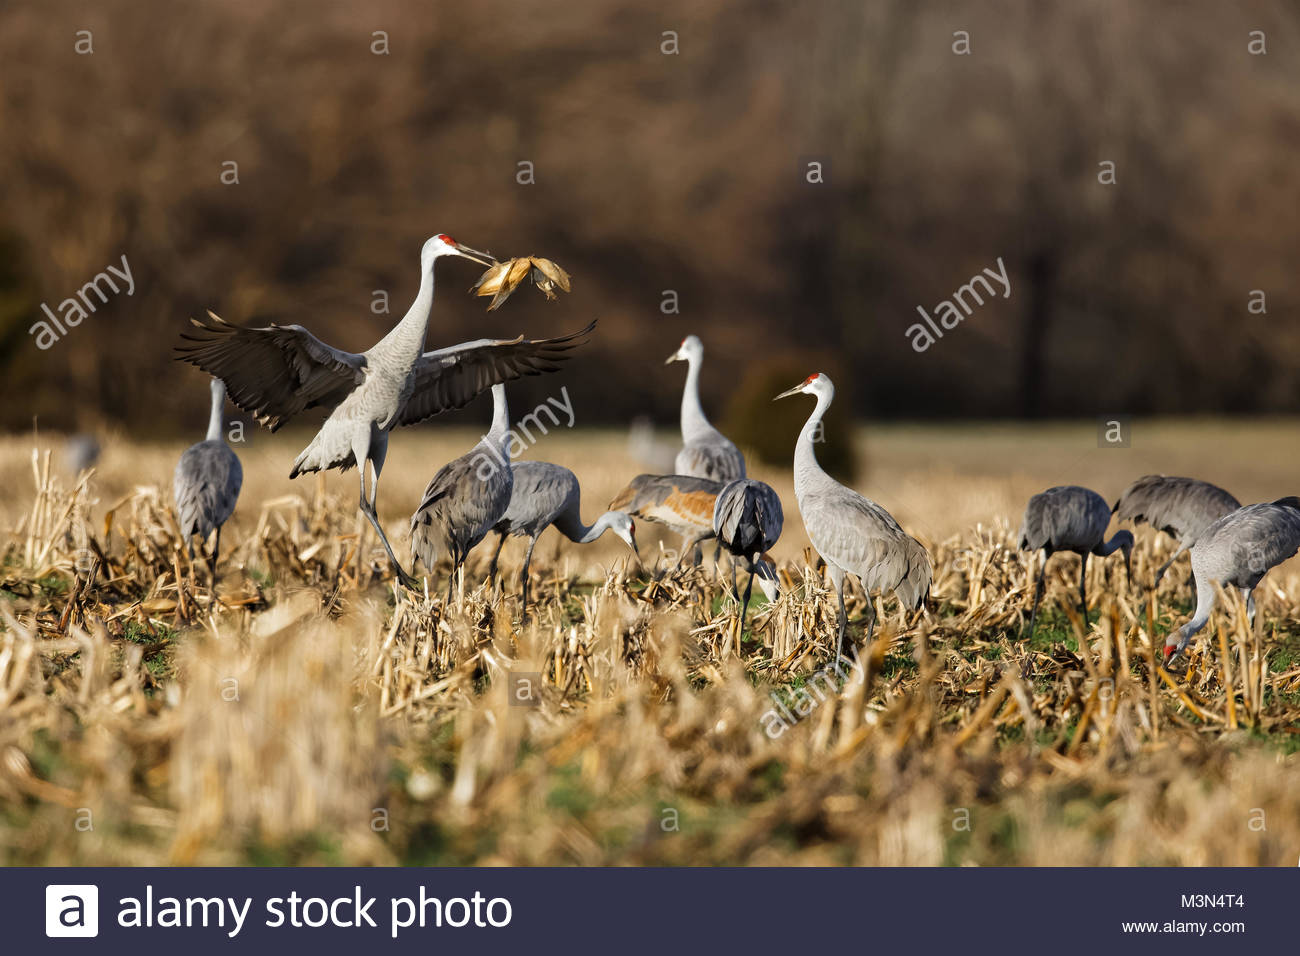 Sandhill Crane jumping and throwing corn shucks into air - Stock Image